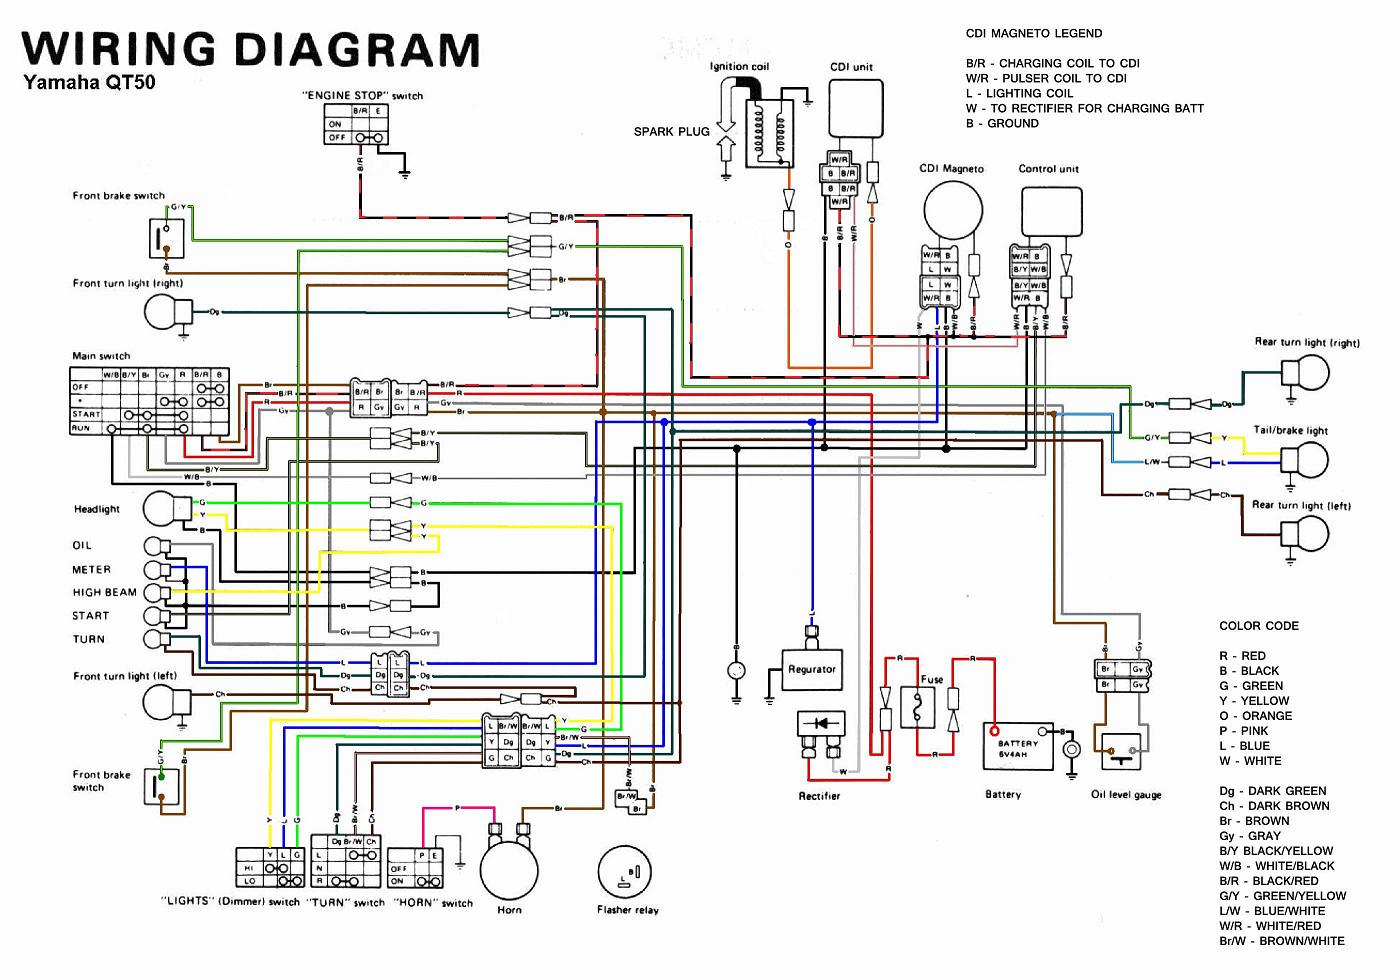 Wiring Diagram Of Suzuki Raider 150 | Wiring Liry on